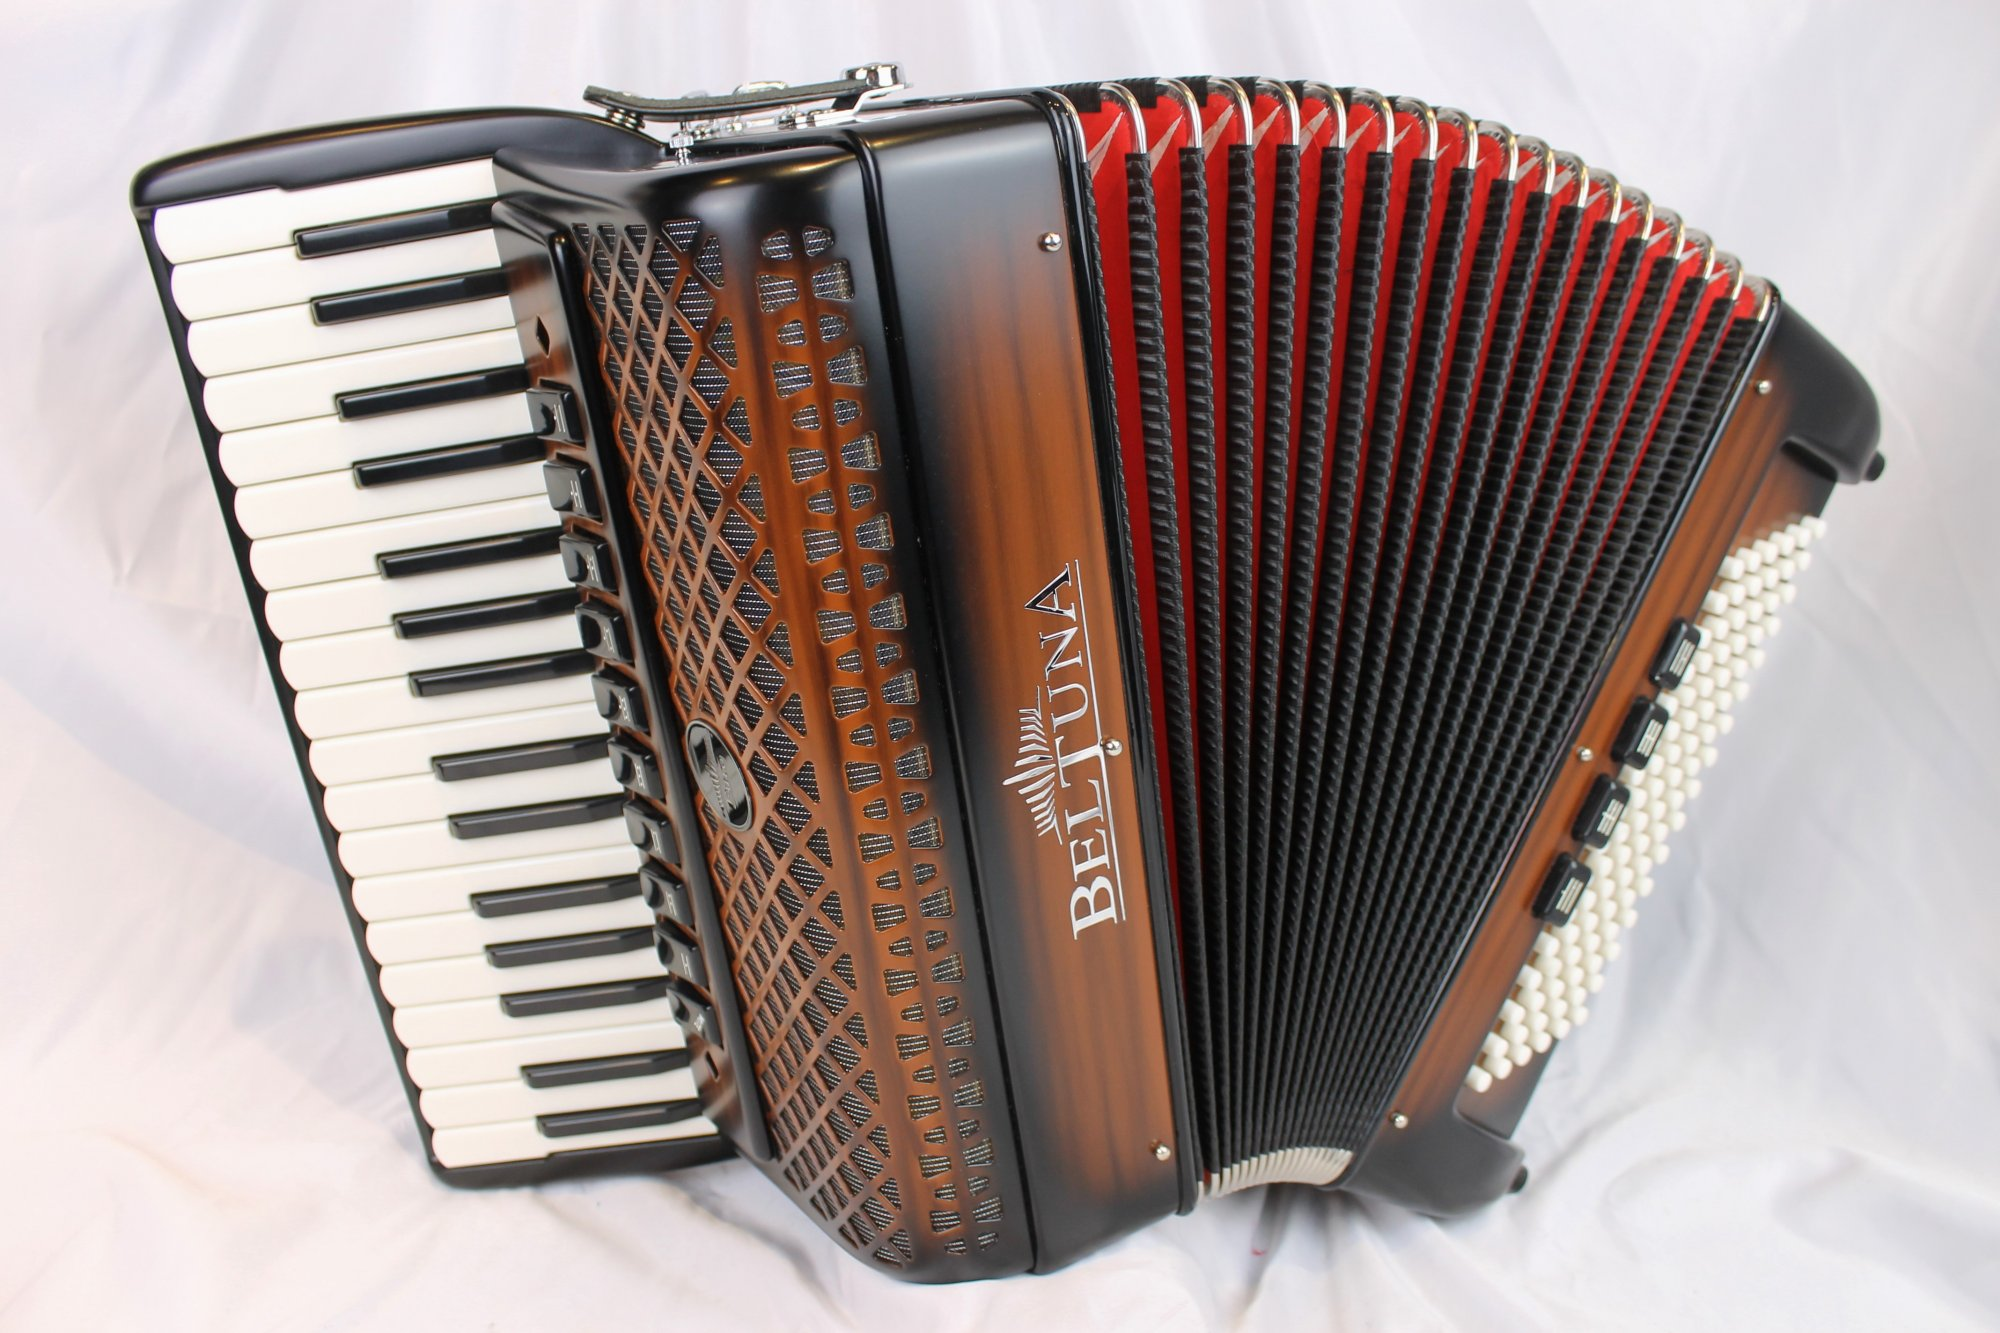 NEW Chocolate Beltuna Euro IV Special Piano Accordion LMMM 34 96